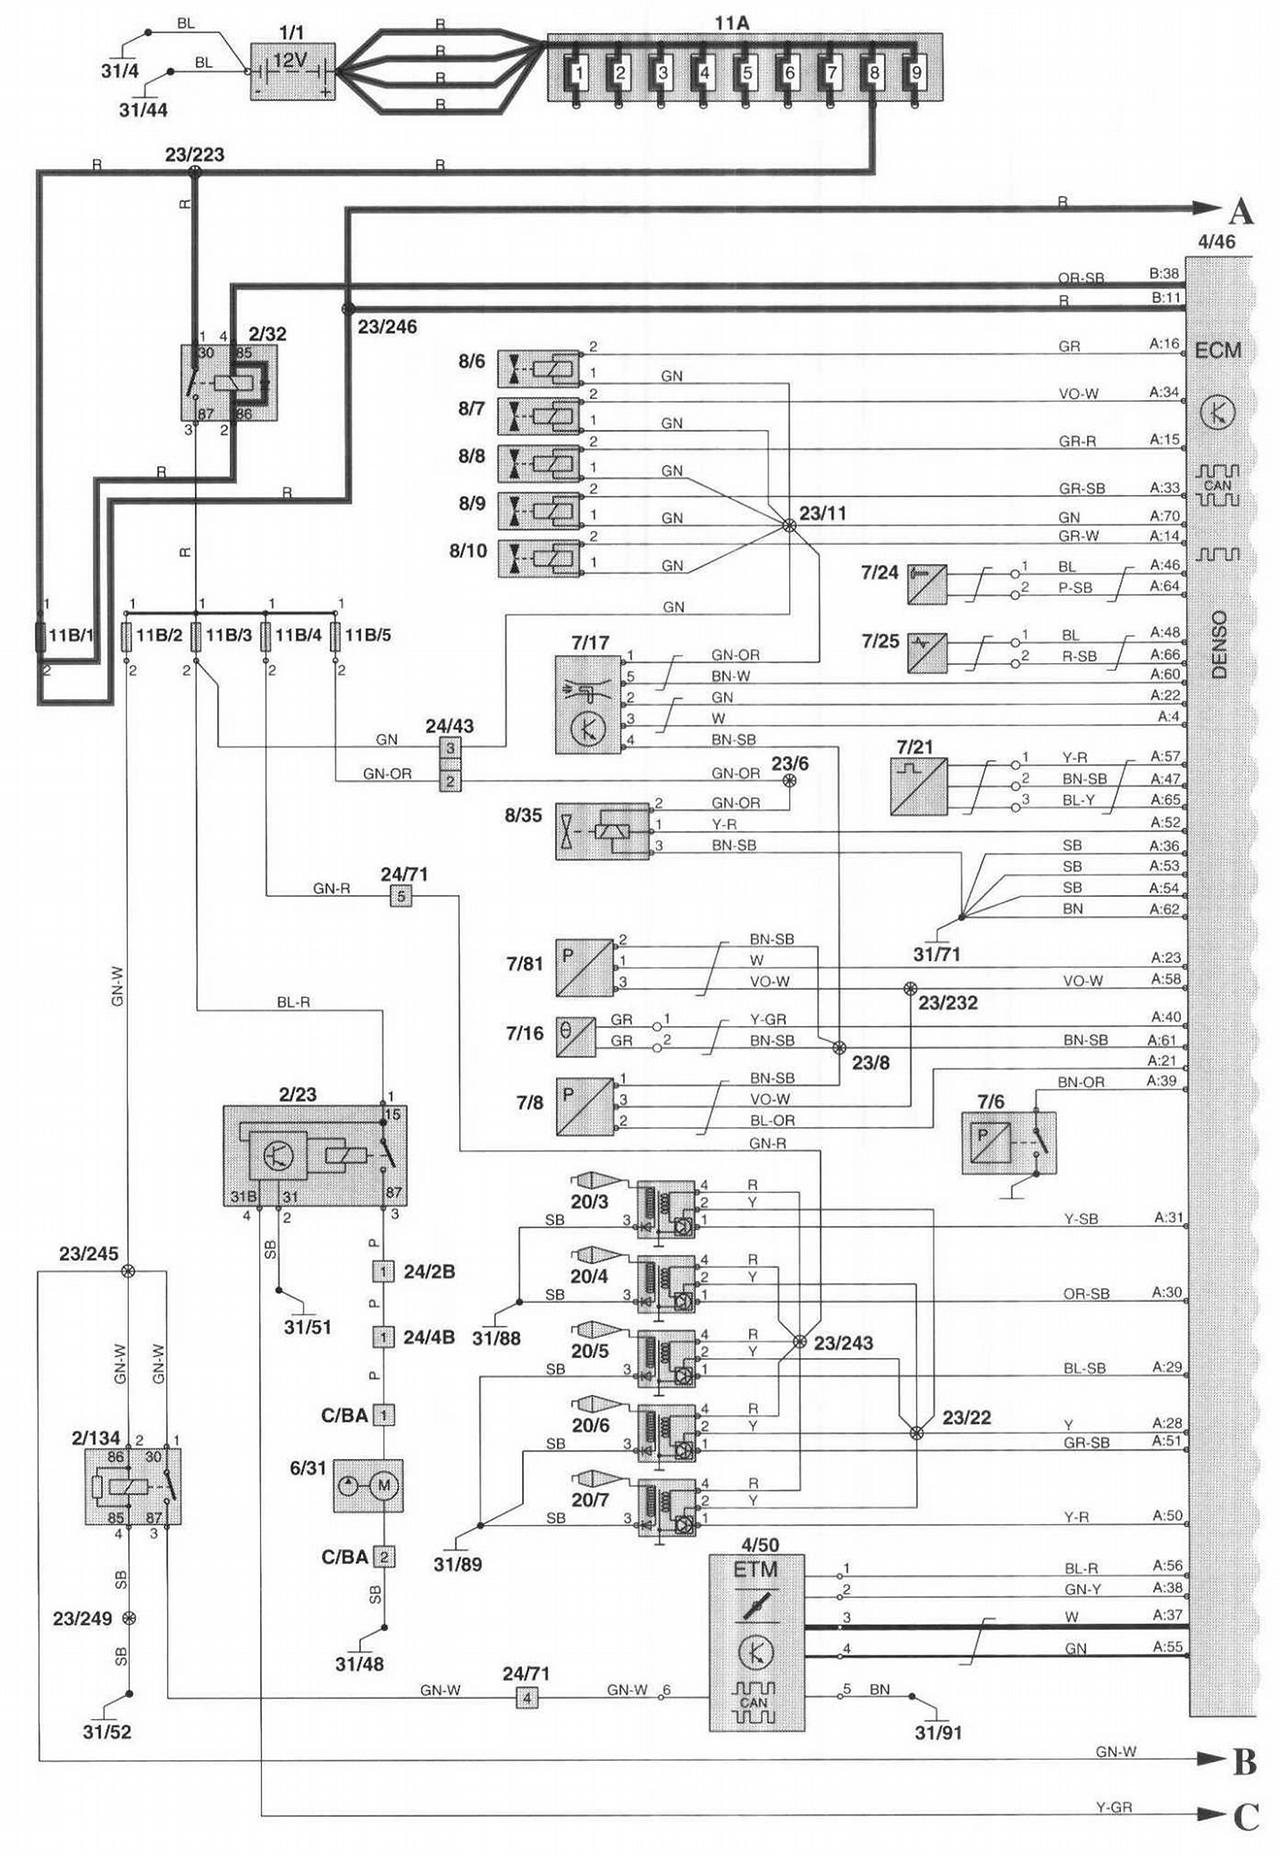 07 Volvo S60 Fuse Diagram